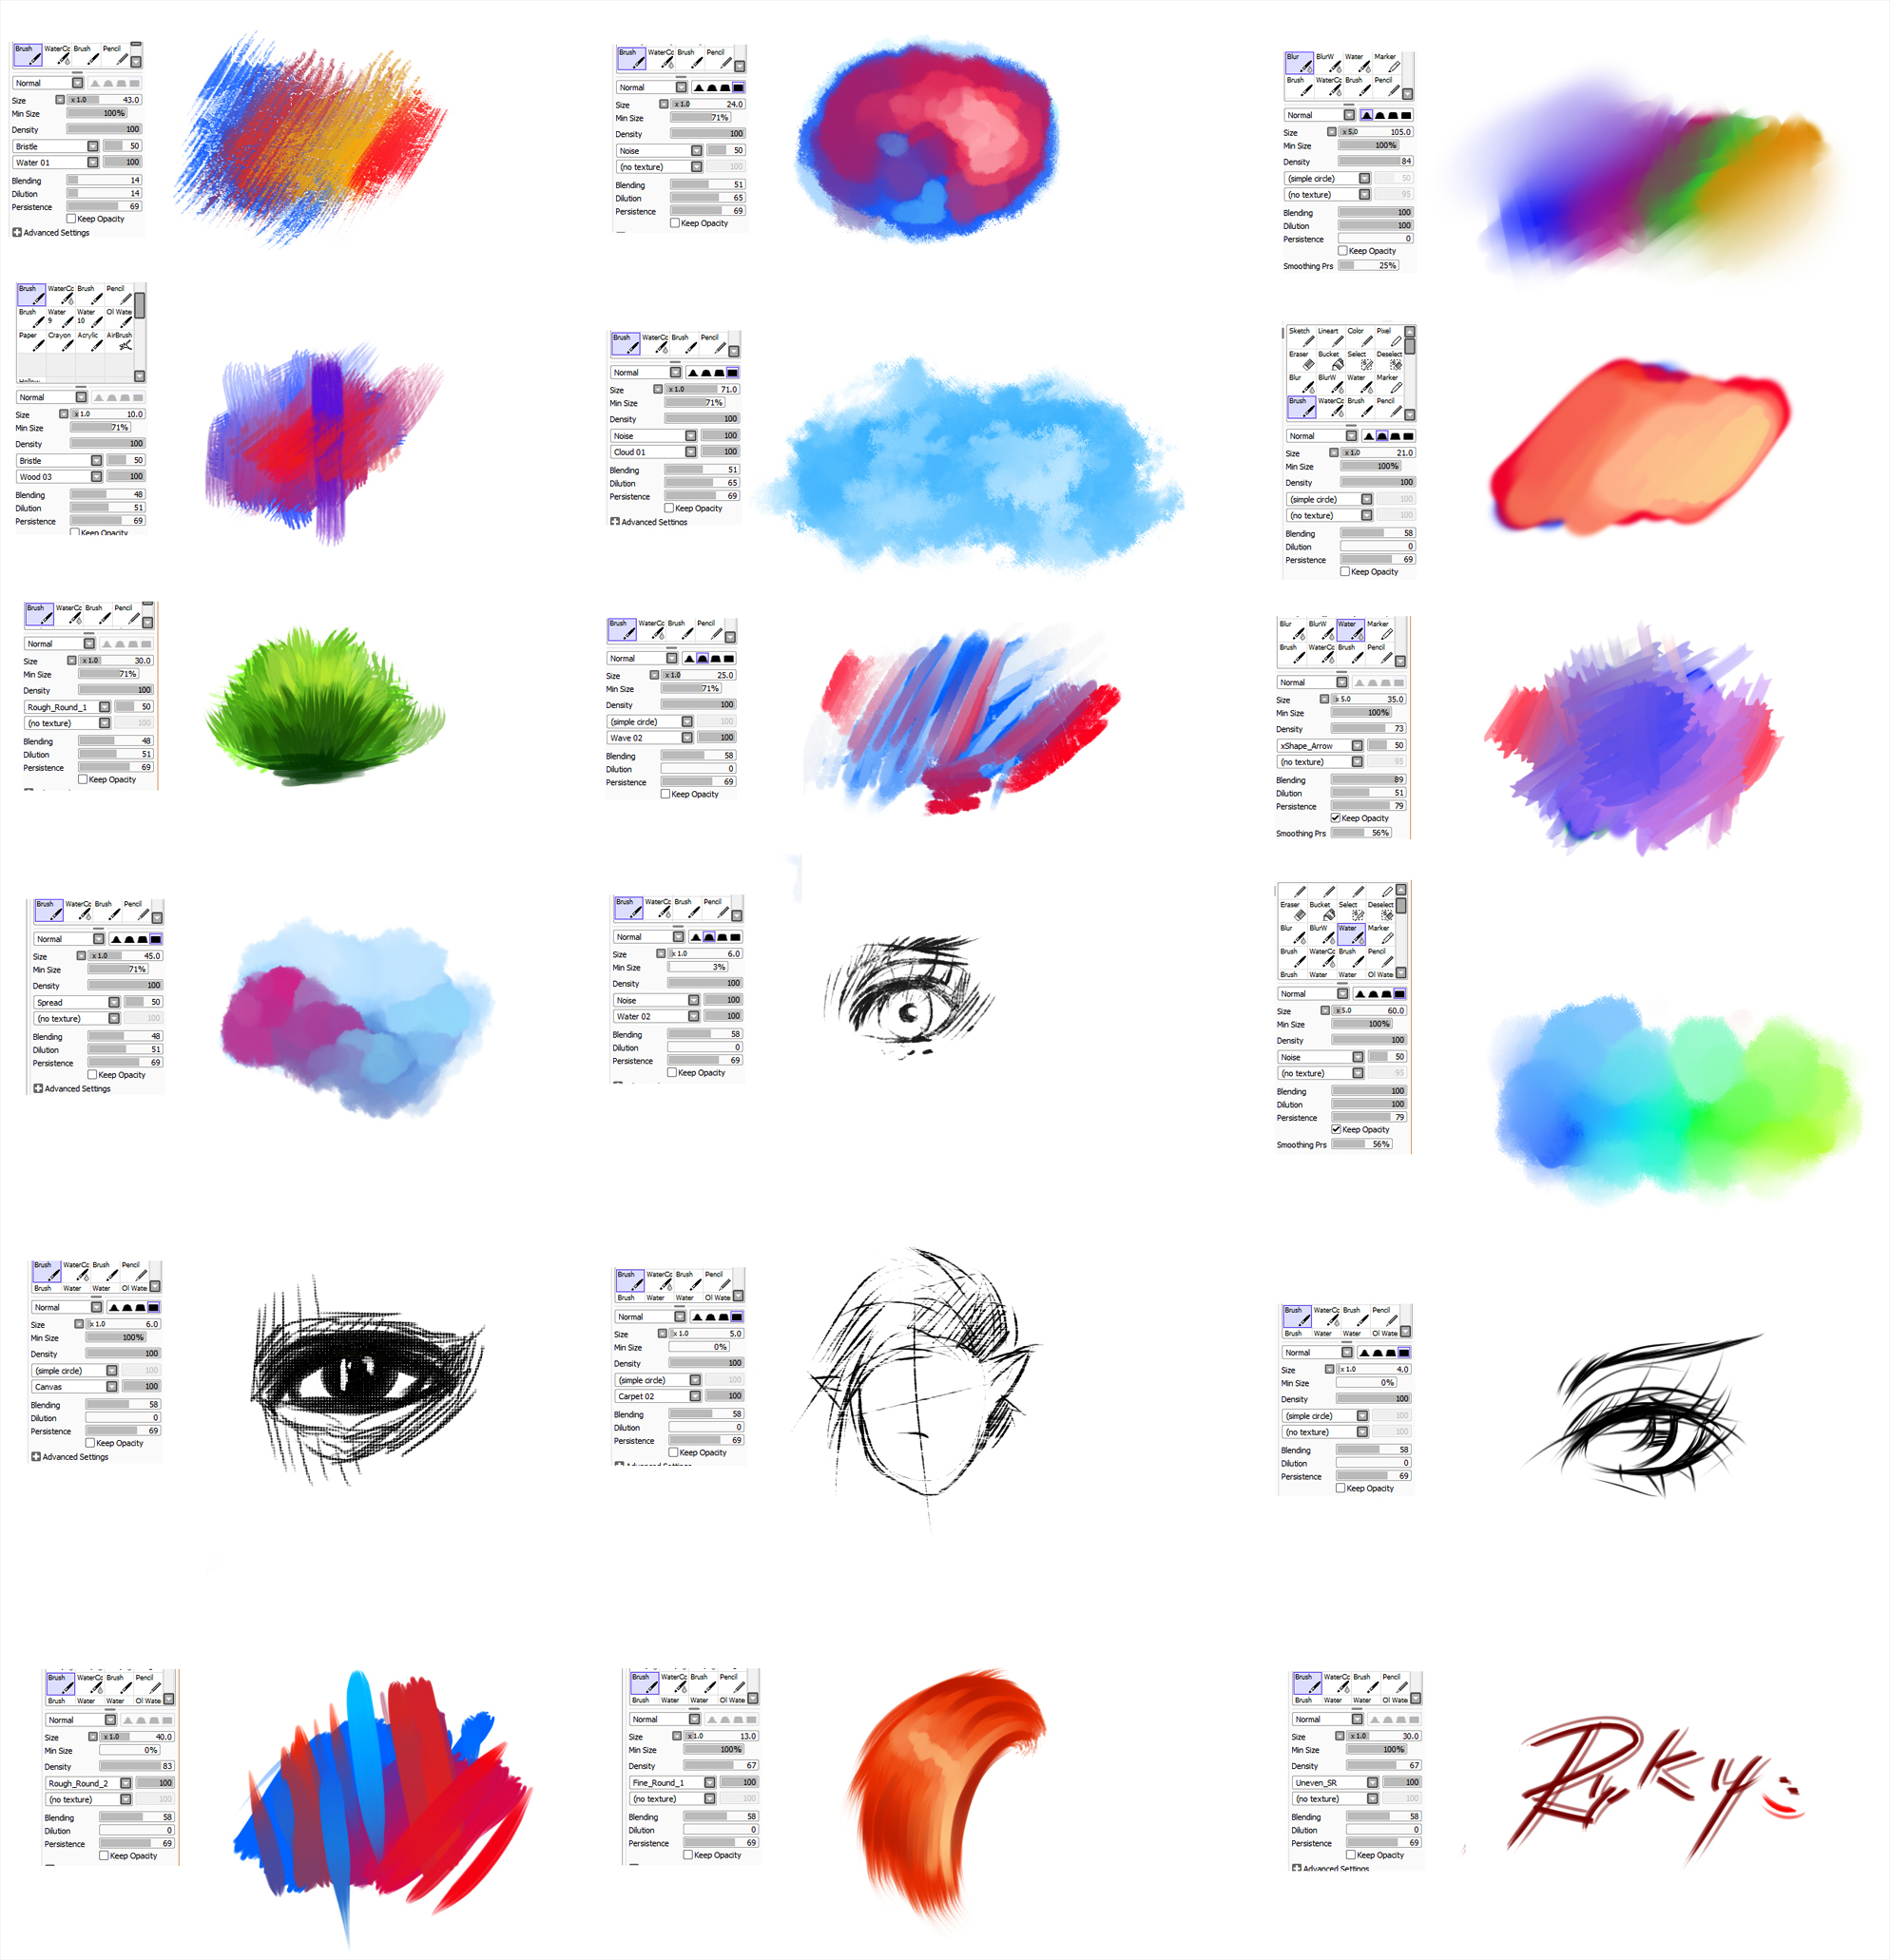 Brushes type for Paint tool SAI #2 by ryky